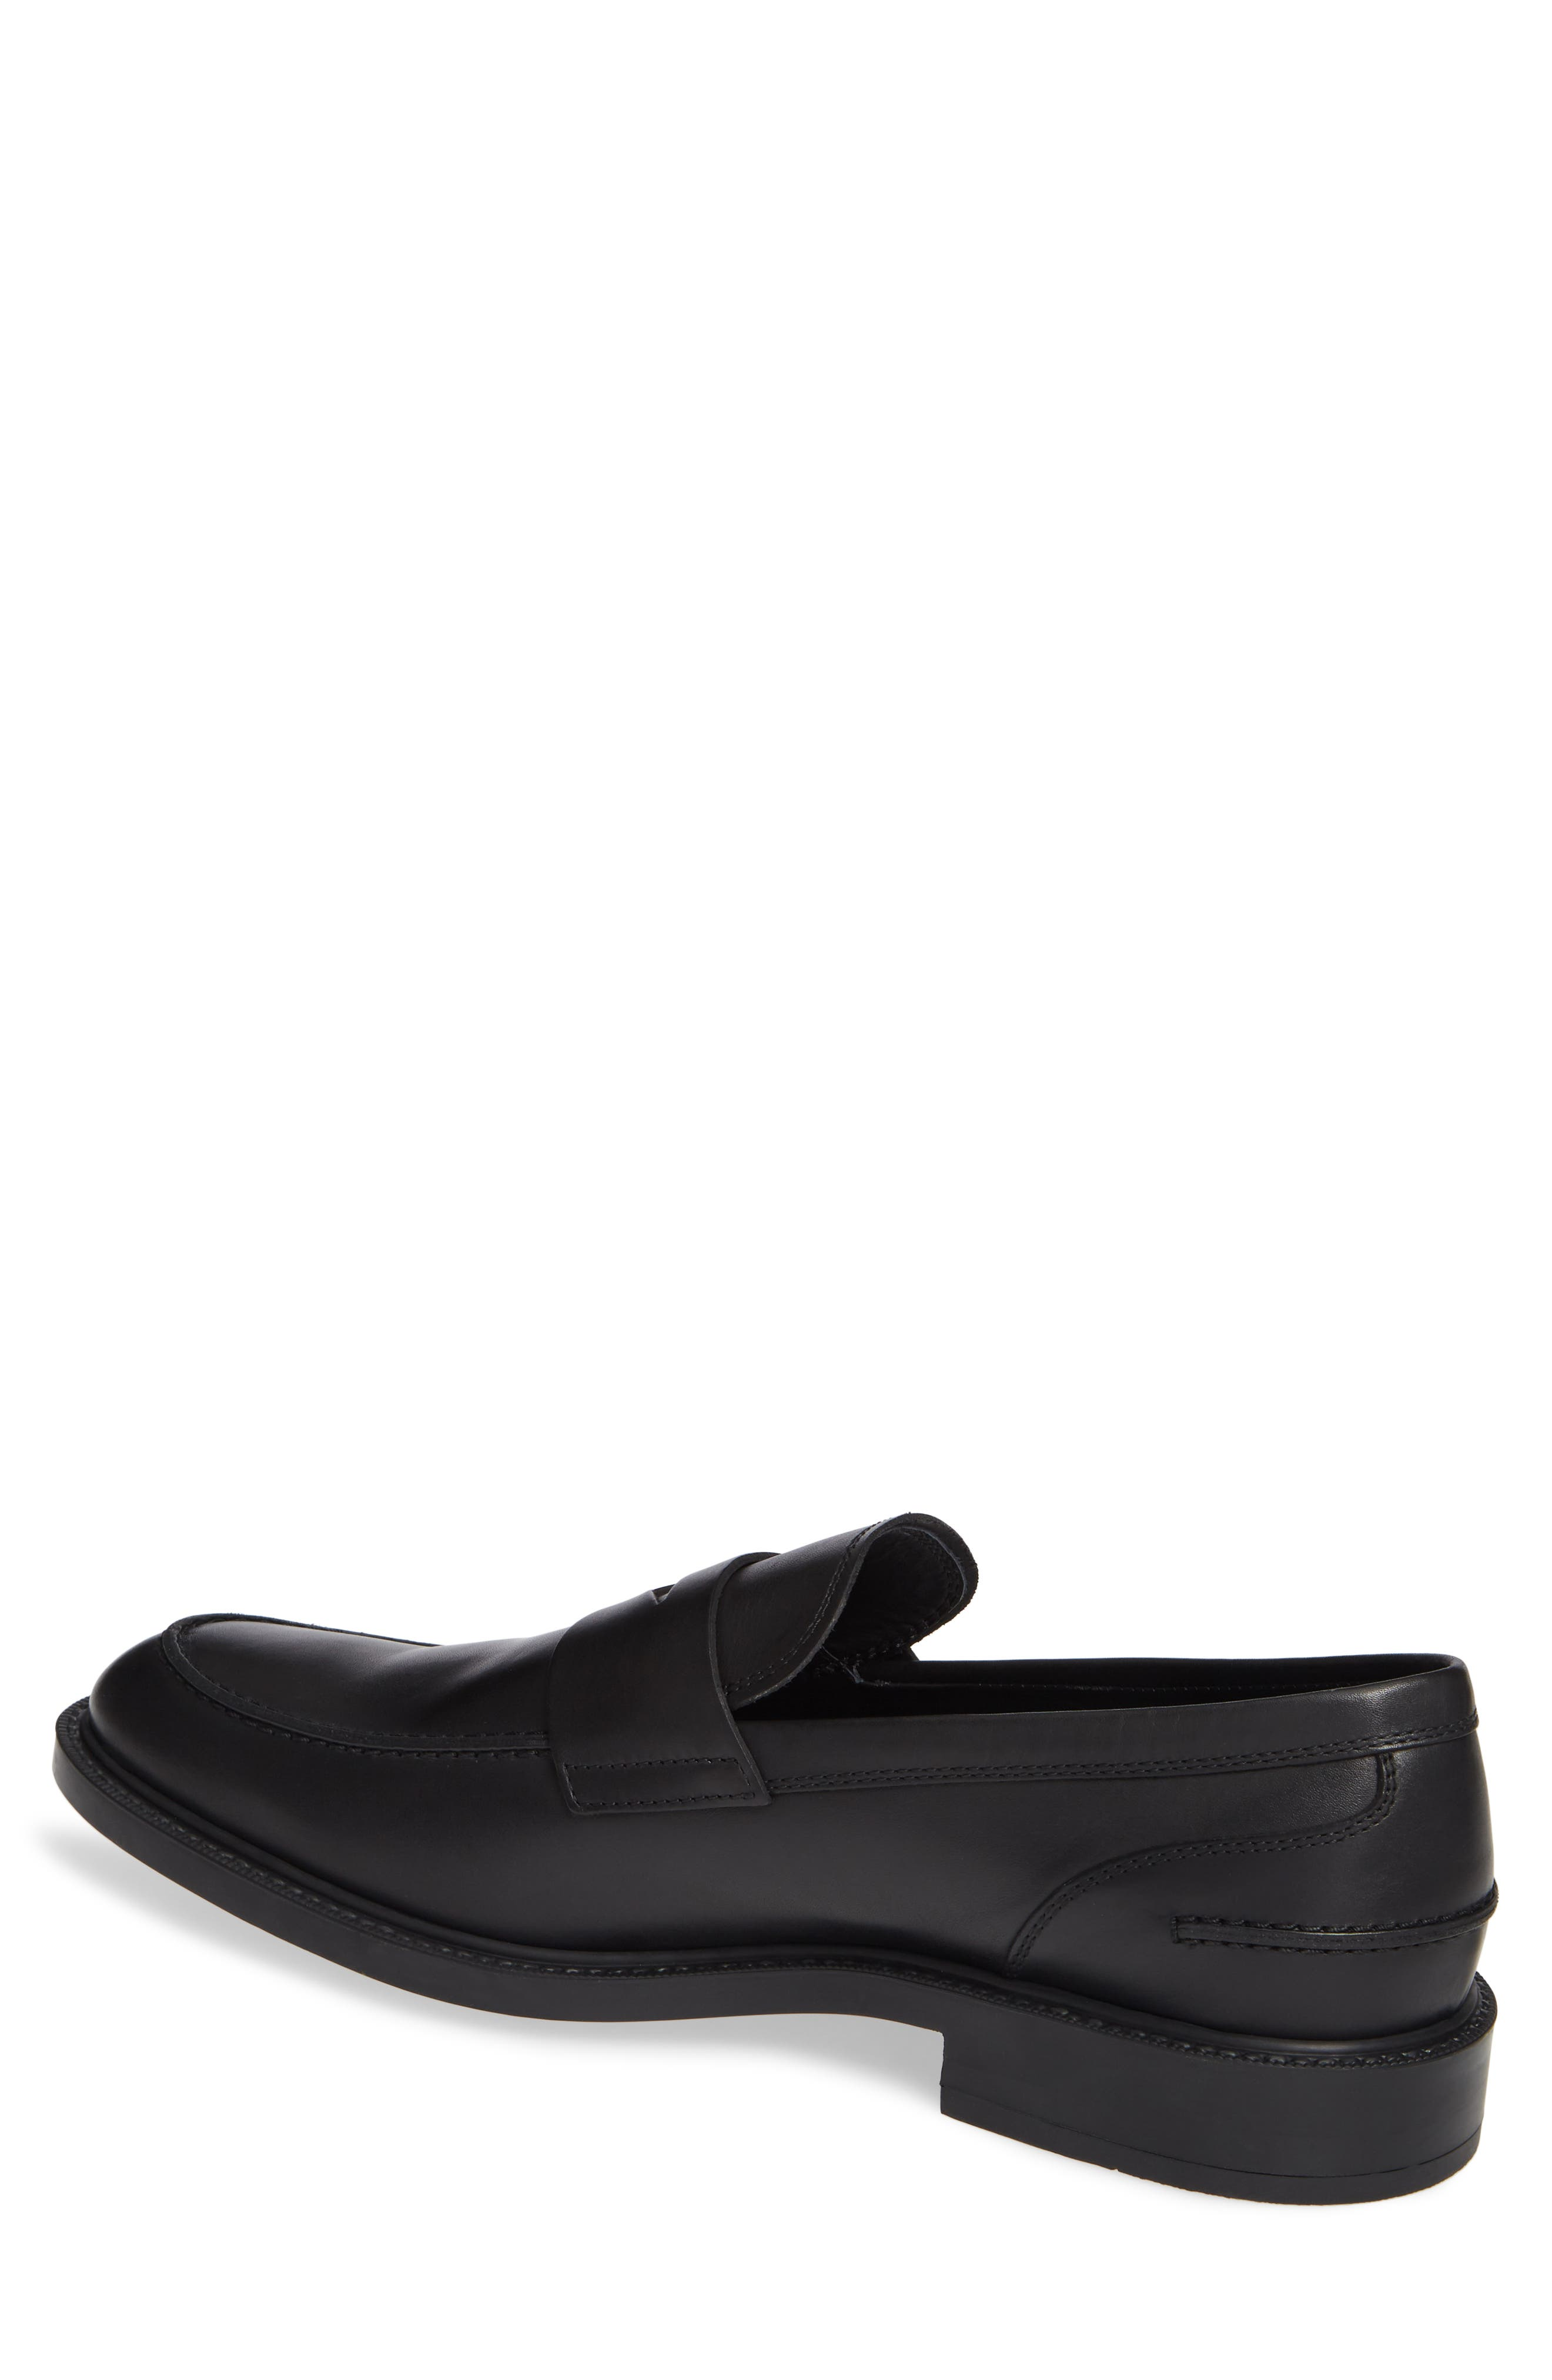 TOD'S, Mocassino Water Repellent Penny Loafer, Alternate thumbnail 2, color, BLACK/ BLACK